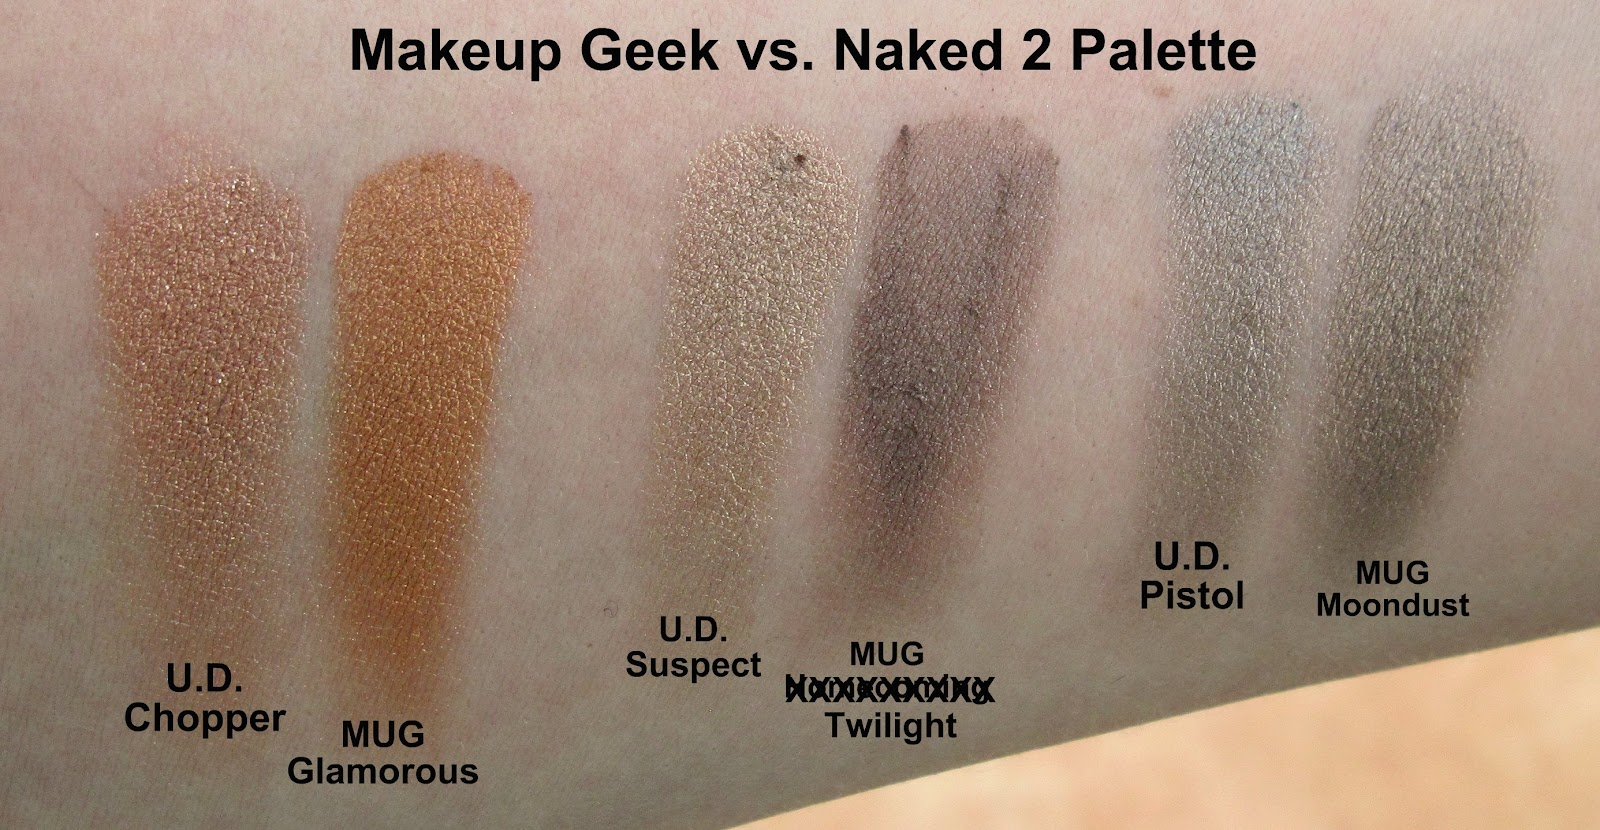 of The Makeup Geek Colors